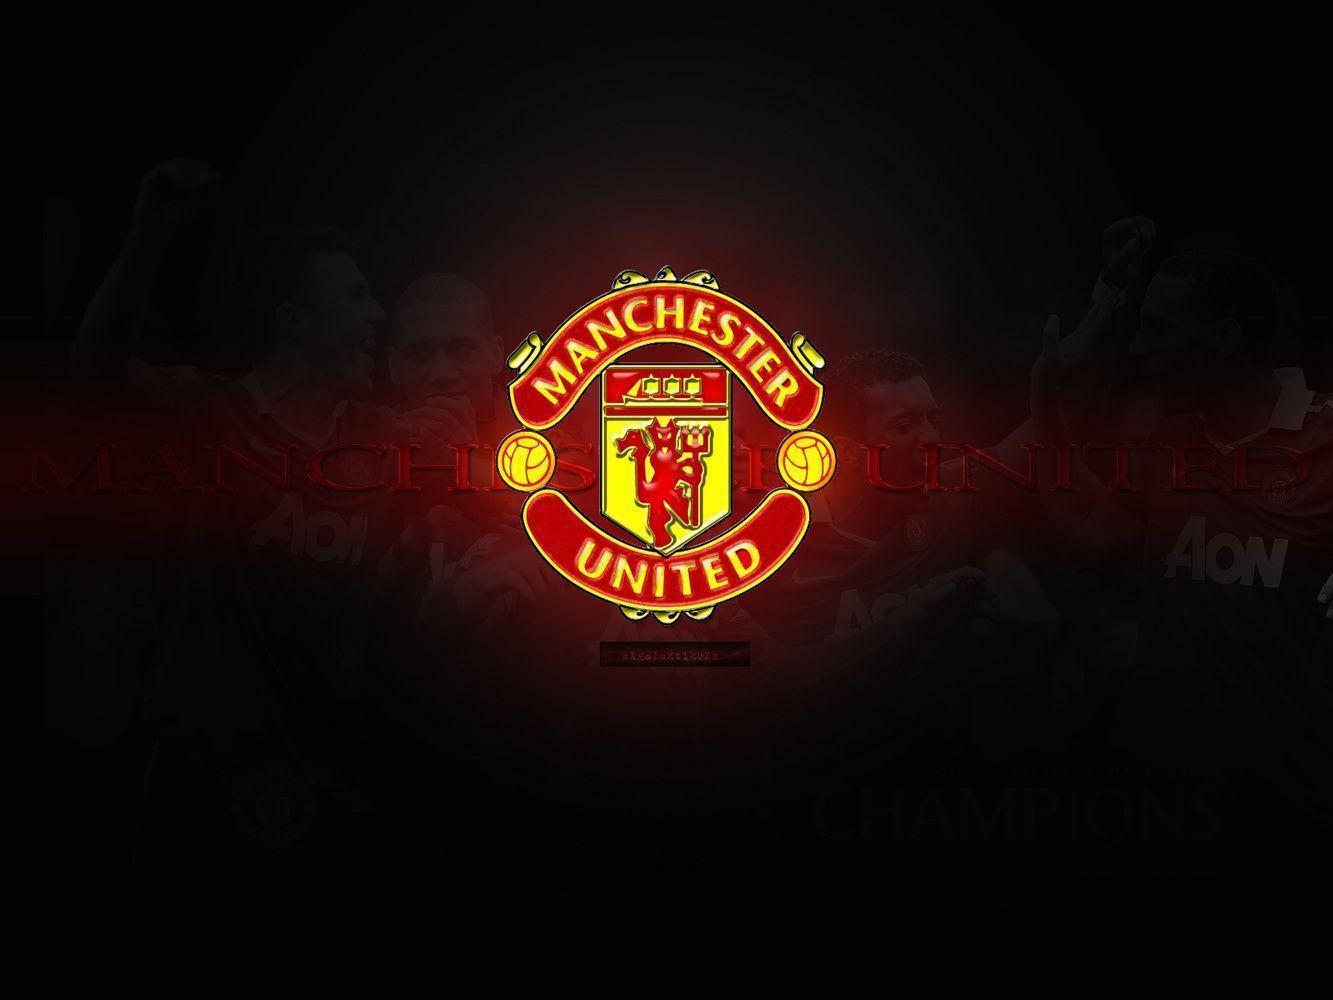 World Sports Hd Wallpapers: Manchester United Hd Wallpapers 2012